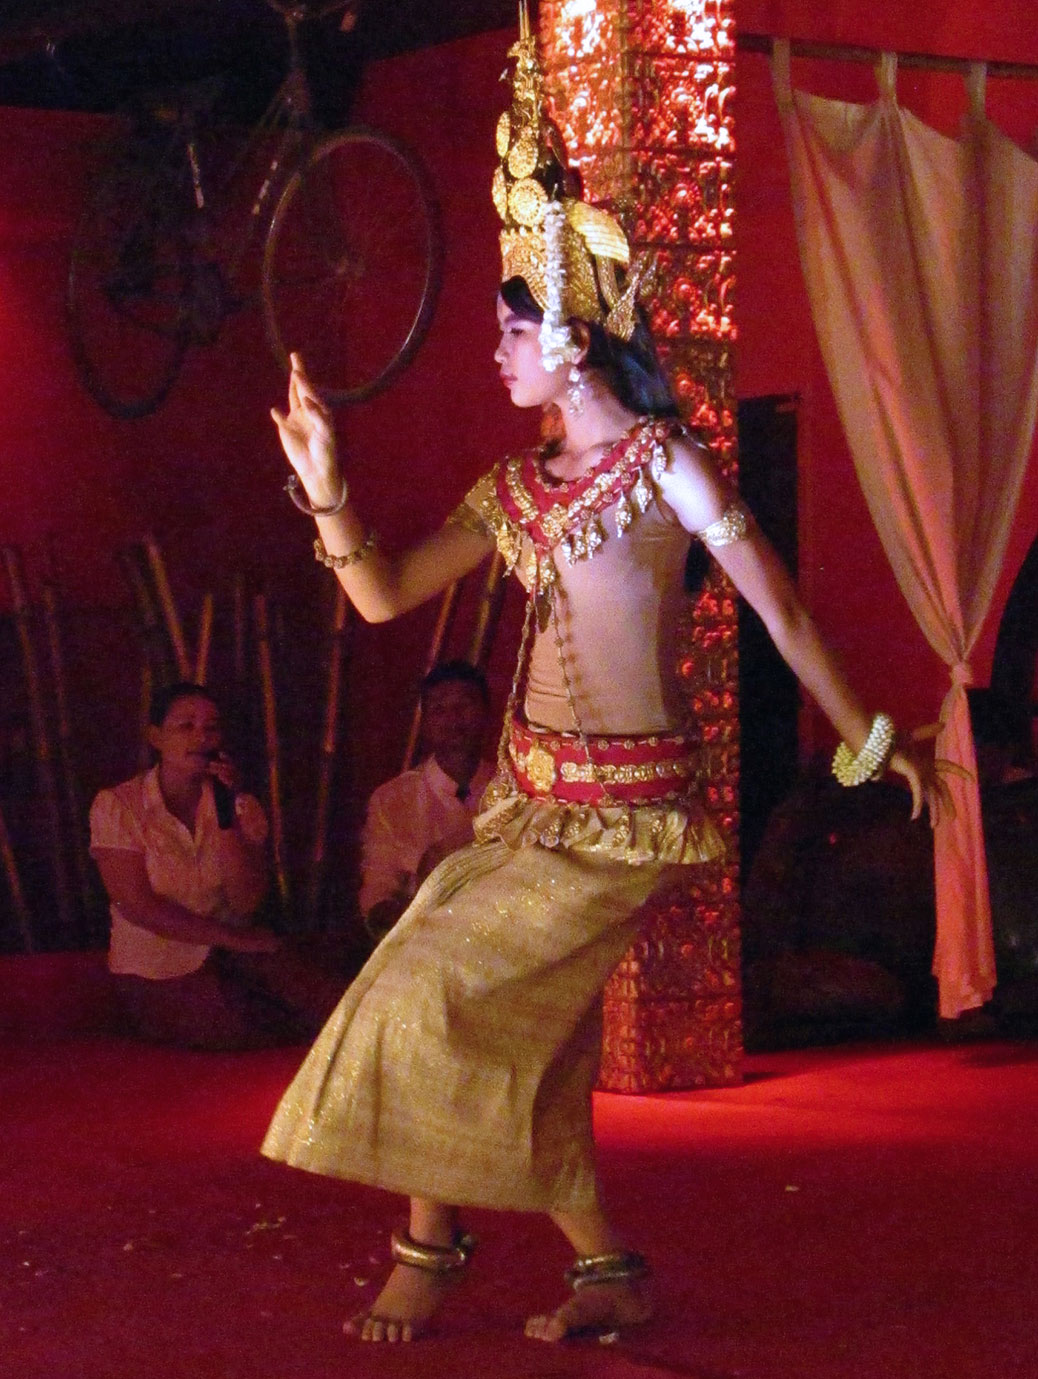 A free apsara dance performance at the Temple Balcony on Pub Street.